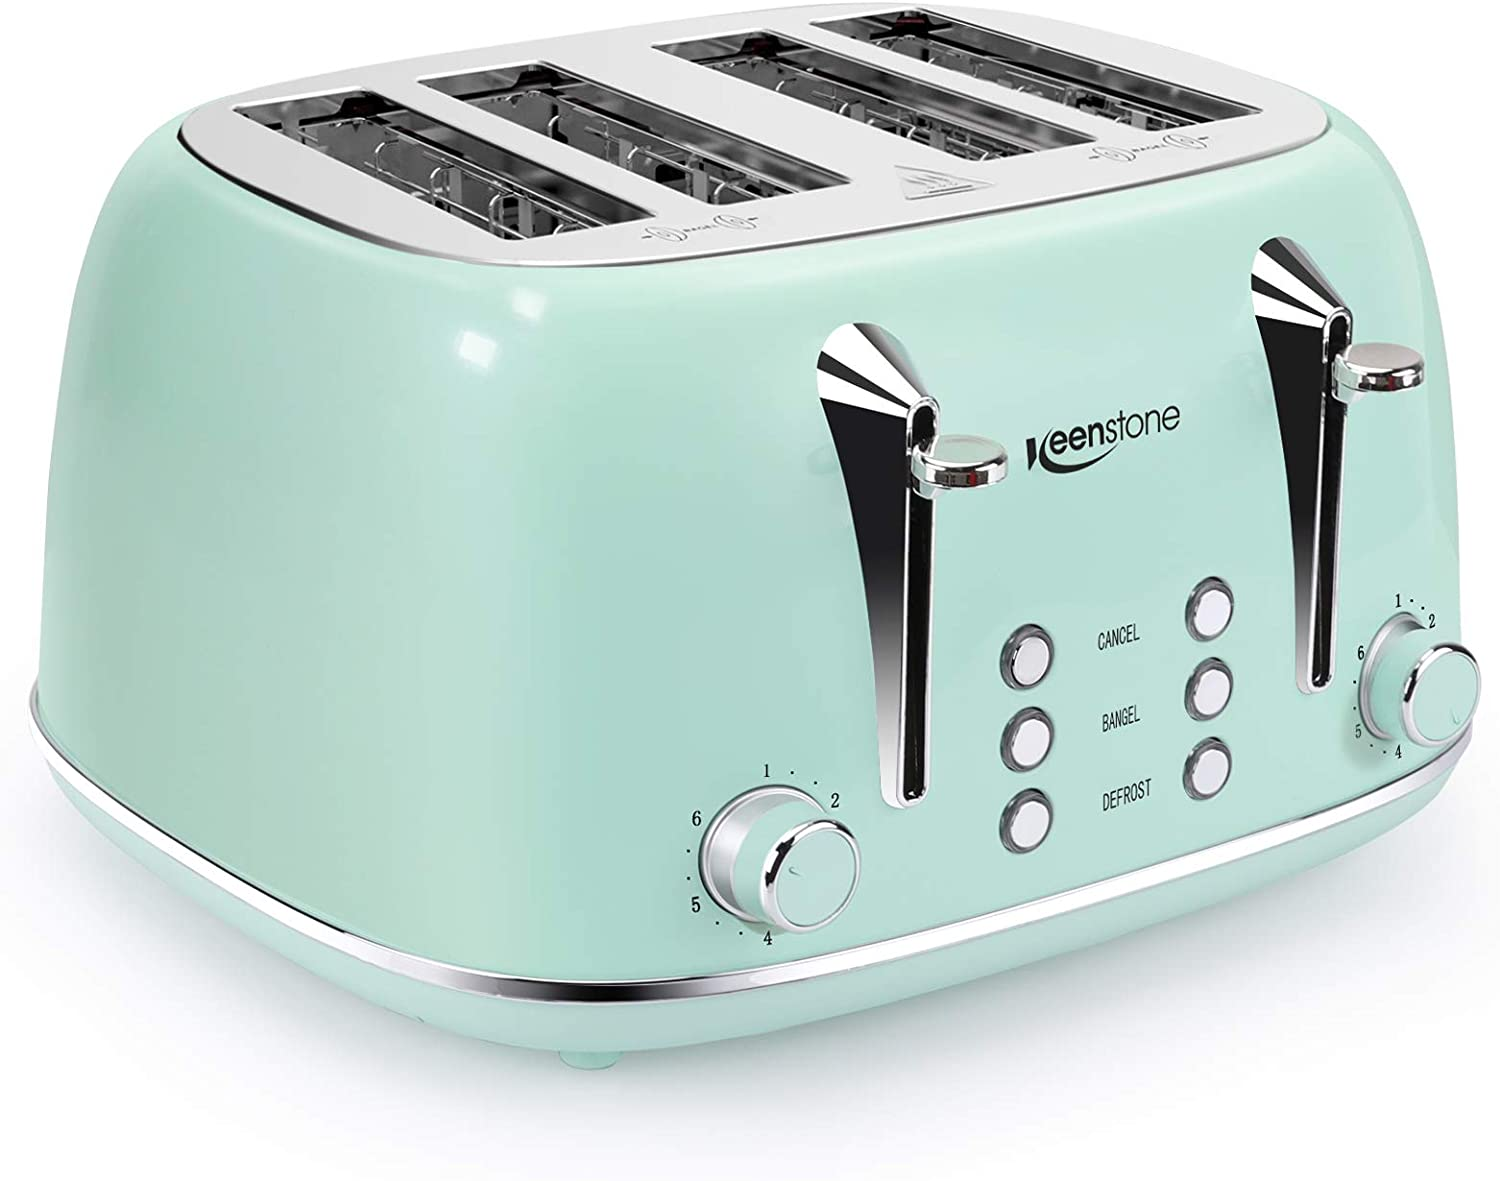 Toasters 4 Slice, Keenstone Retro Stainless Steel Bagel Toaster with High Lift Lever and Removal Crumb Tray, Green